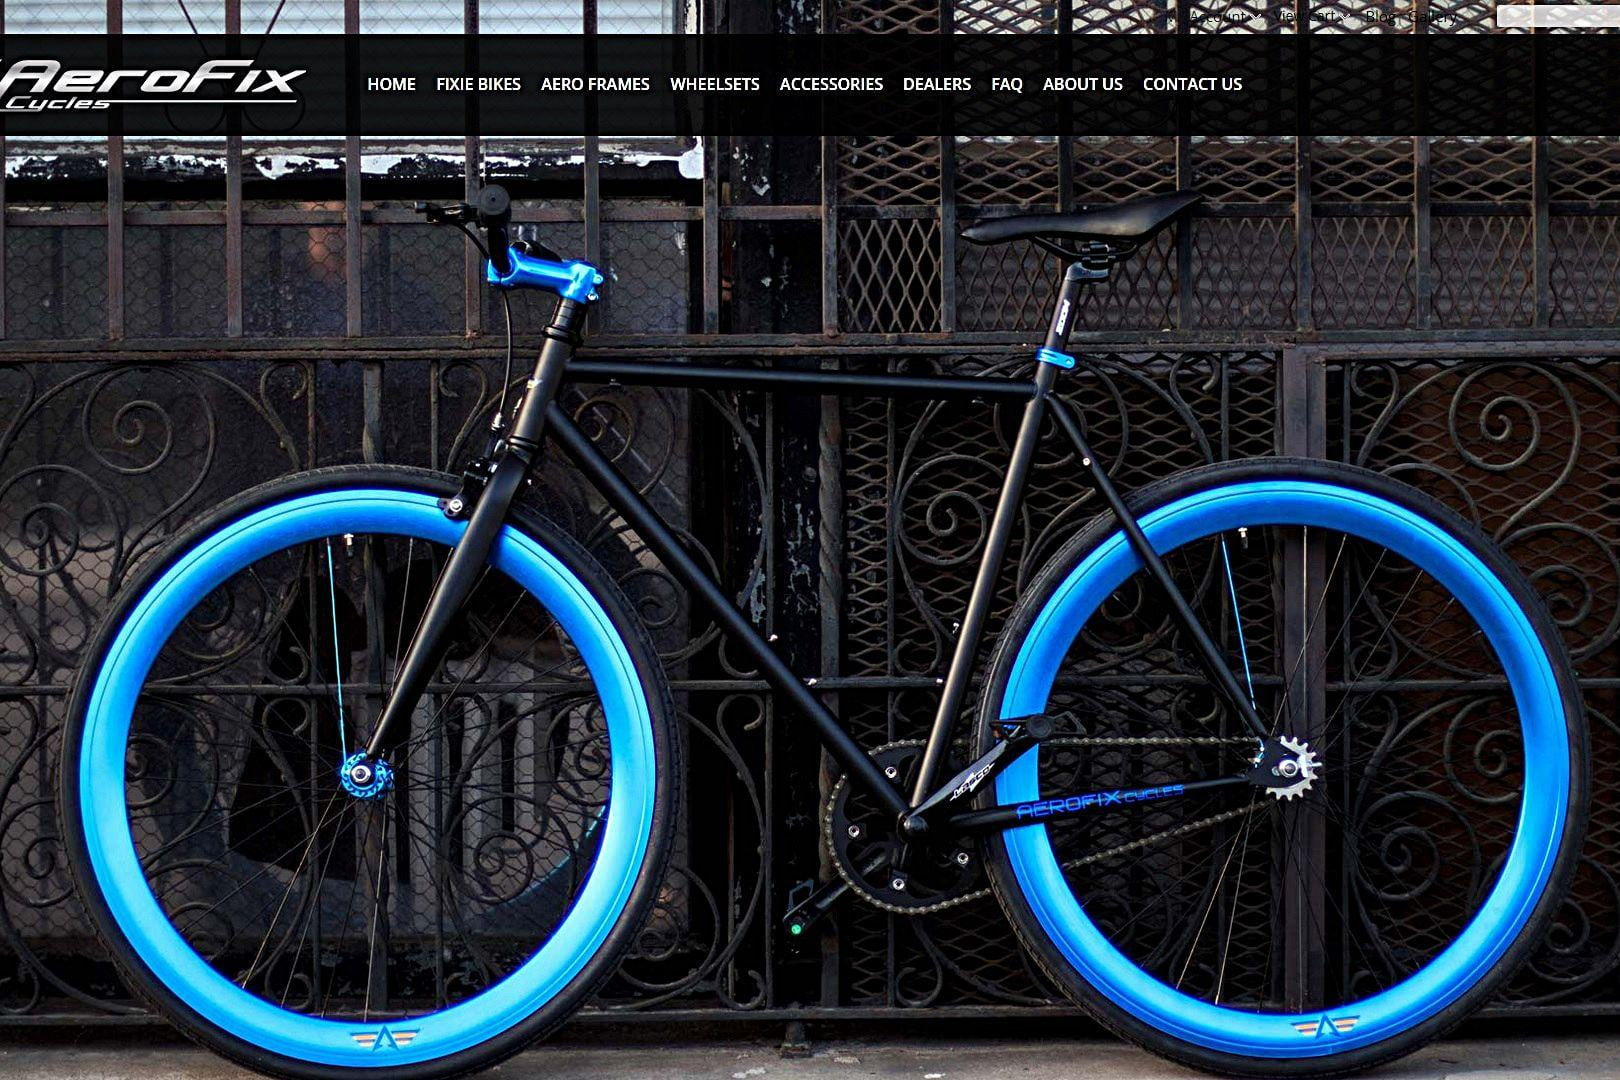 Buy Bicycle Online >> Buy A Bike Online And Save Some Bucks Digital Trends